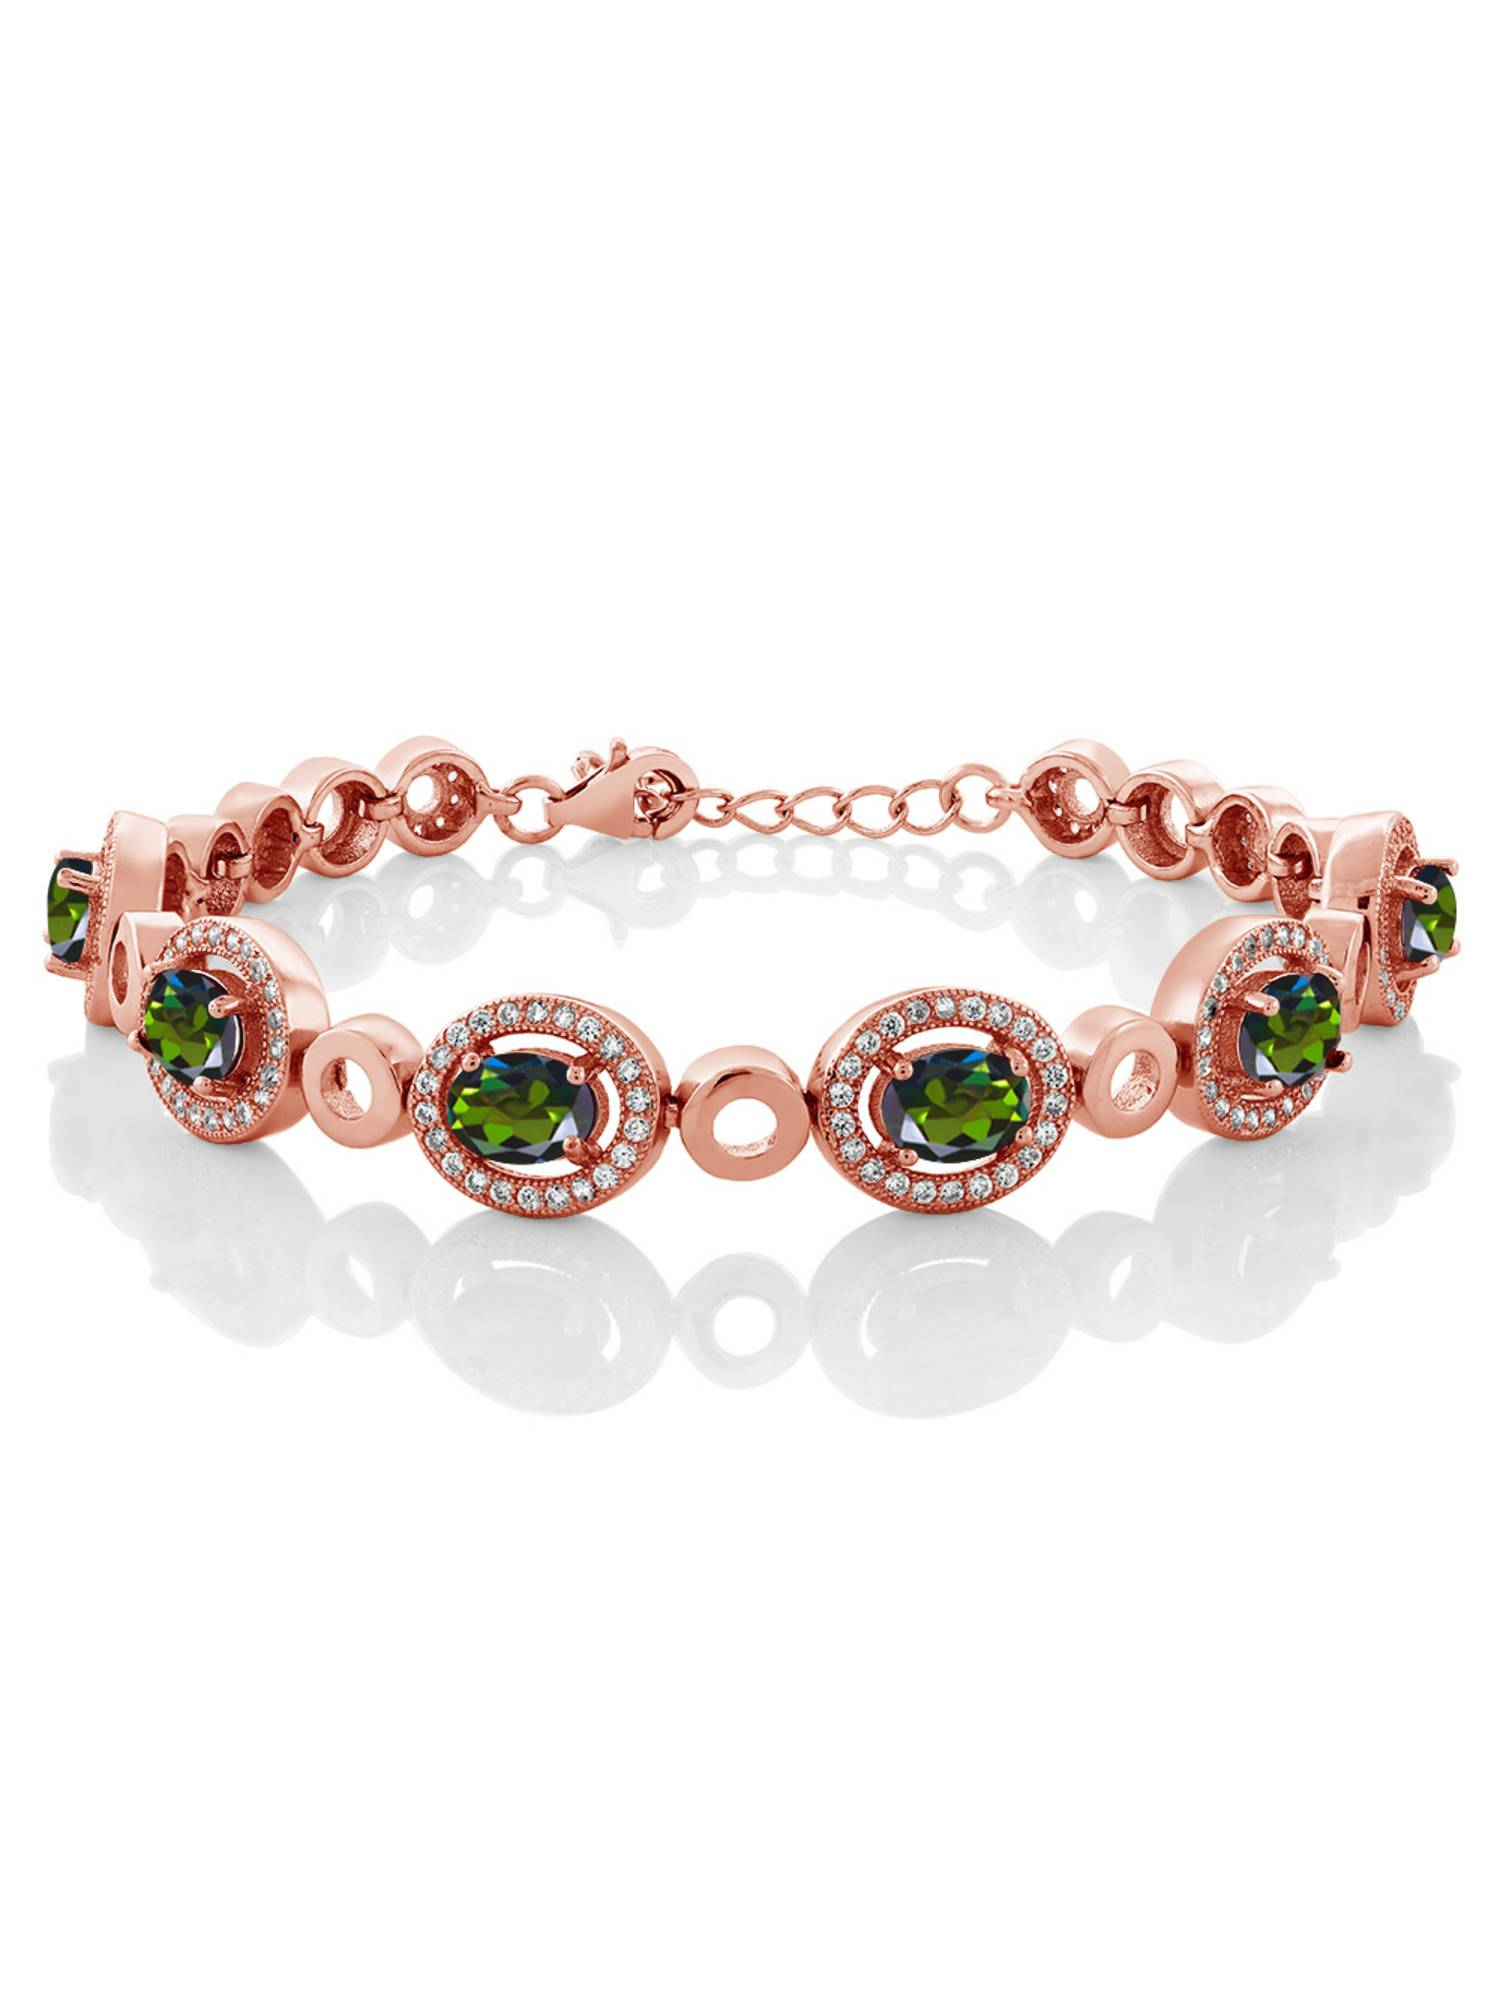 6.72 Ct Tourmaline Green Mystic Topaz 18K Rose Gold Plated Silver Bracelet by